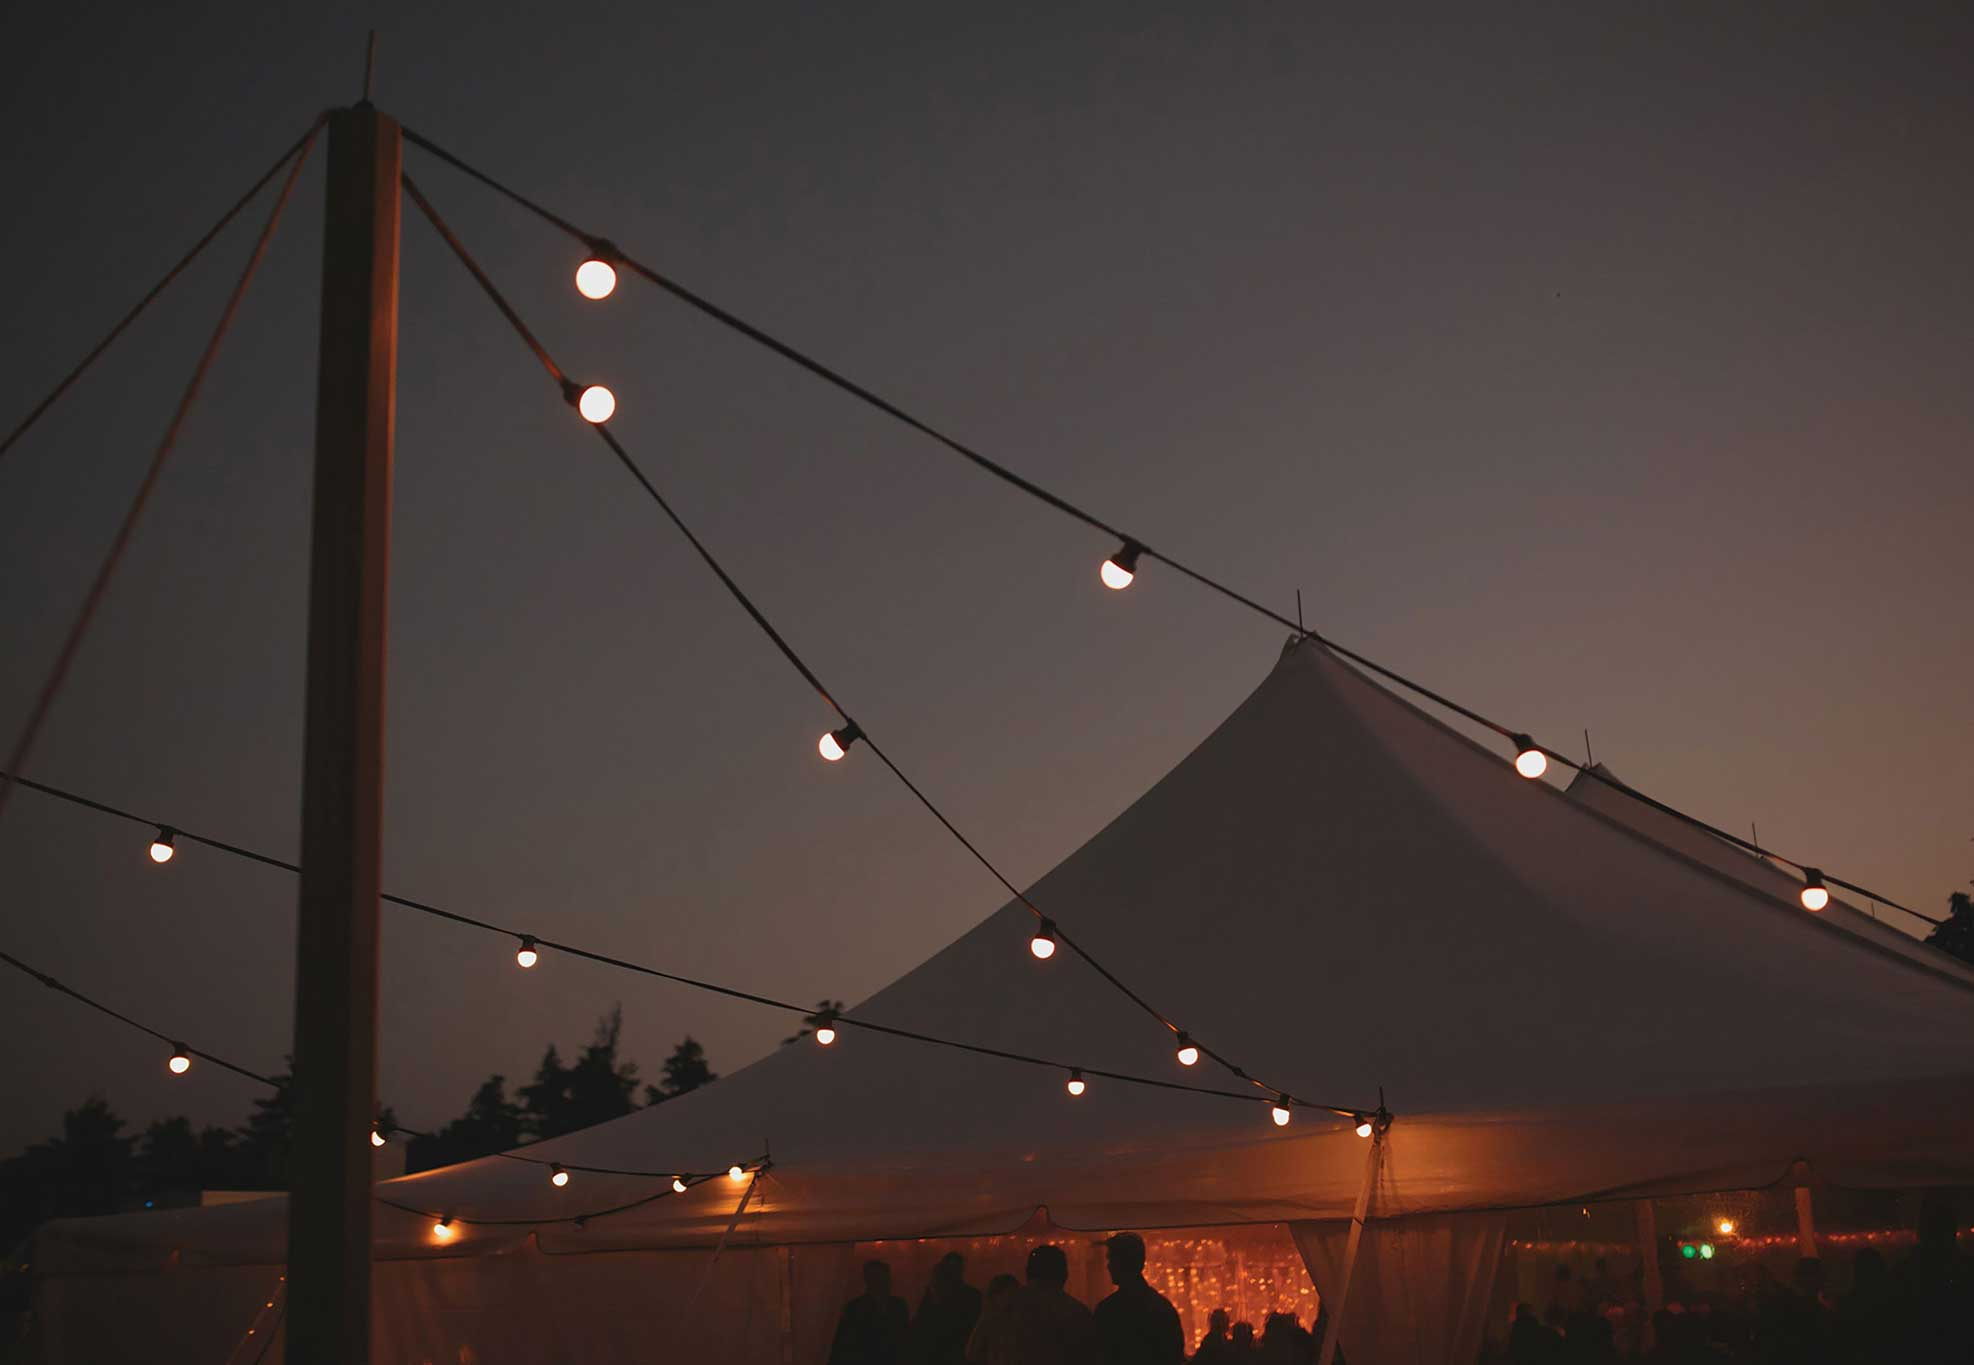 silk-estate-marquee-weddings-and-events-styling-and-hire-lightting-festoon-4